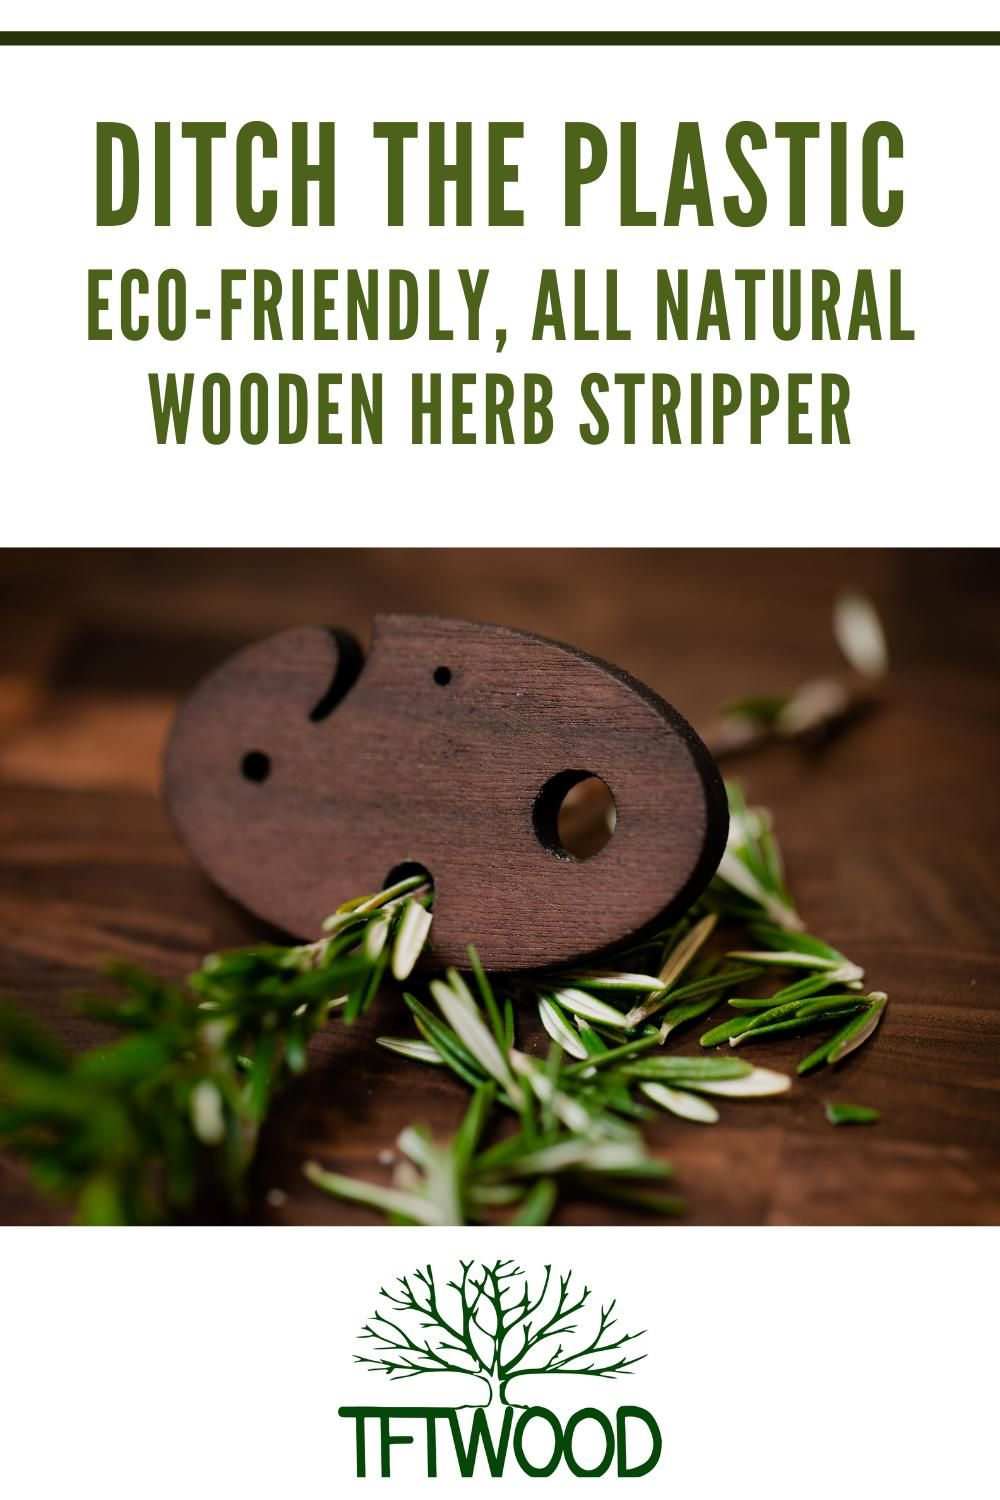 Ditch the Plastic! Eco-Friendly, Wooden Herb Stripper